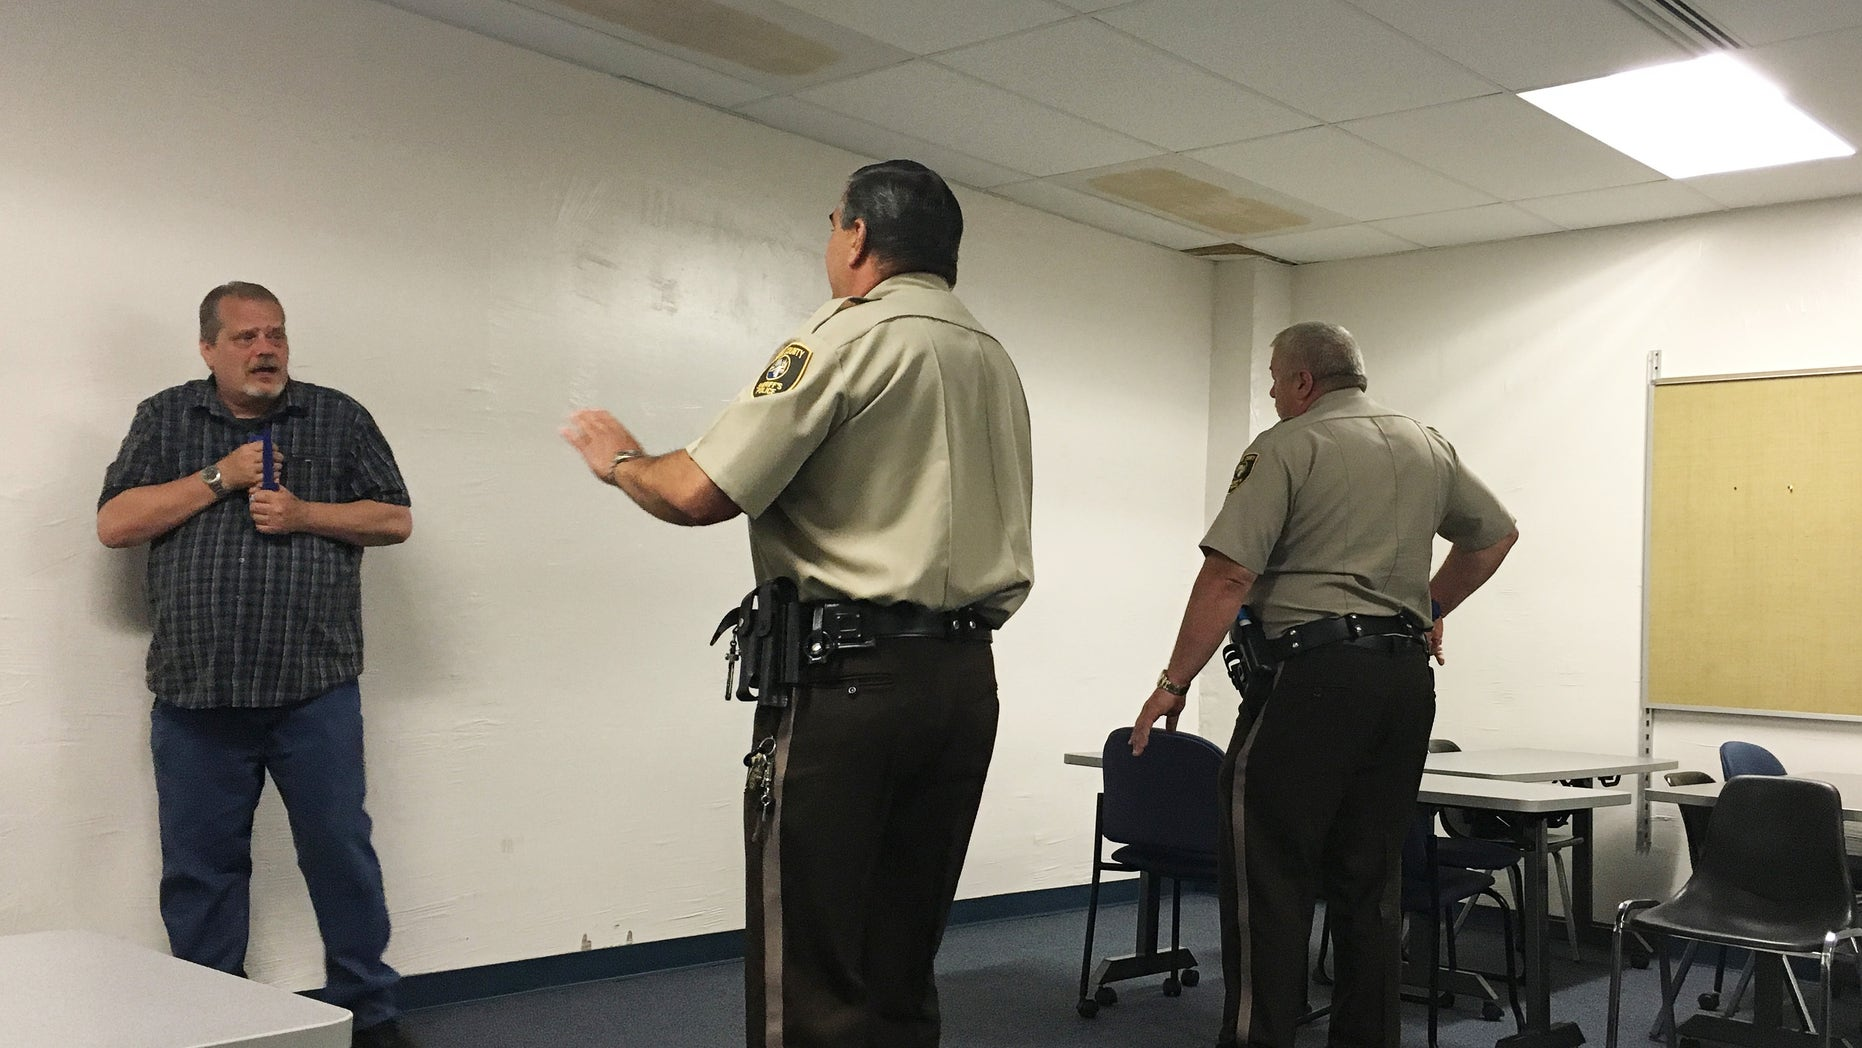 Bob Maas (L), a Crisis Intervention Training Instructor and 16-year Cook County Sheriff's deputy, acts as a schizophrenia customer during a training at Triton College in River Grove, Illinois, U.S. June 23, 2016 as deputies learn how to interact with the mentally ill. Picture taken June 23, 2016. REUTERS/Justin Madden